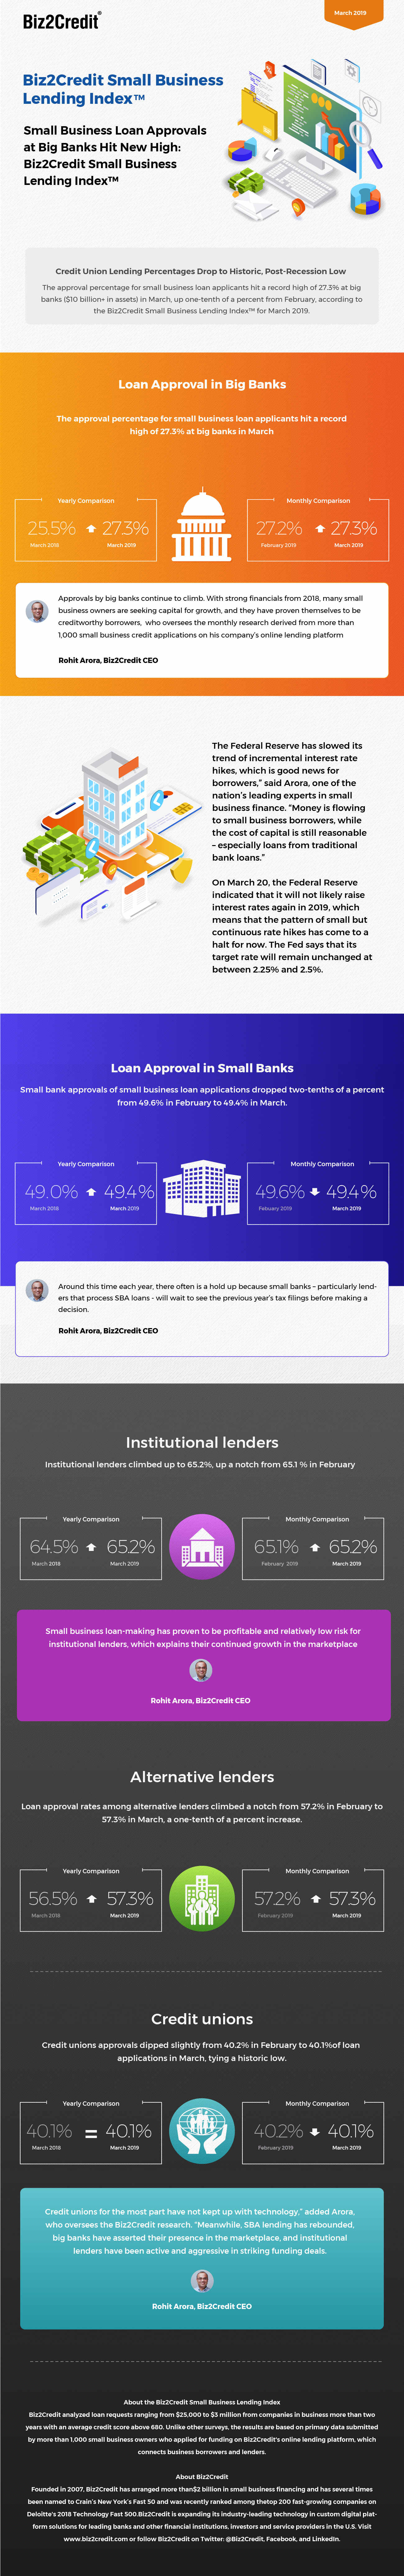 March 2019 Lending Index Infographic